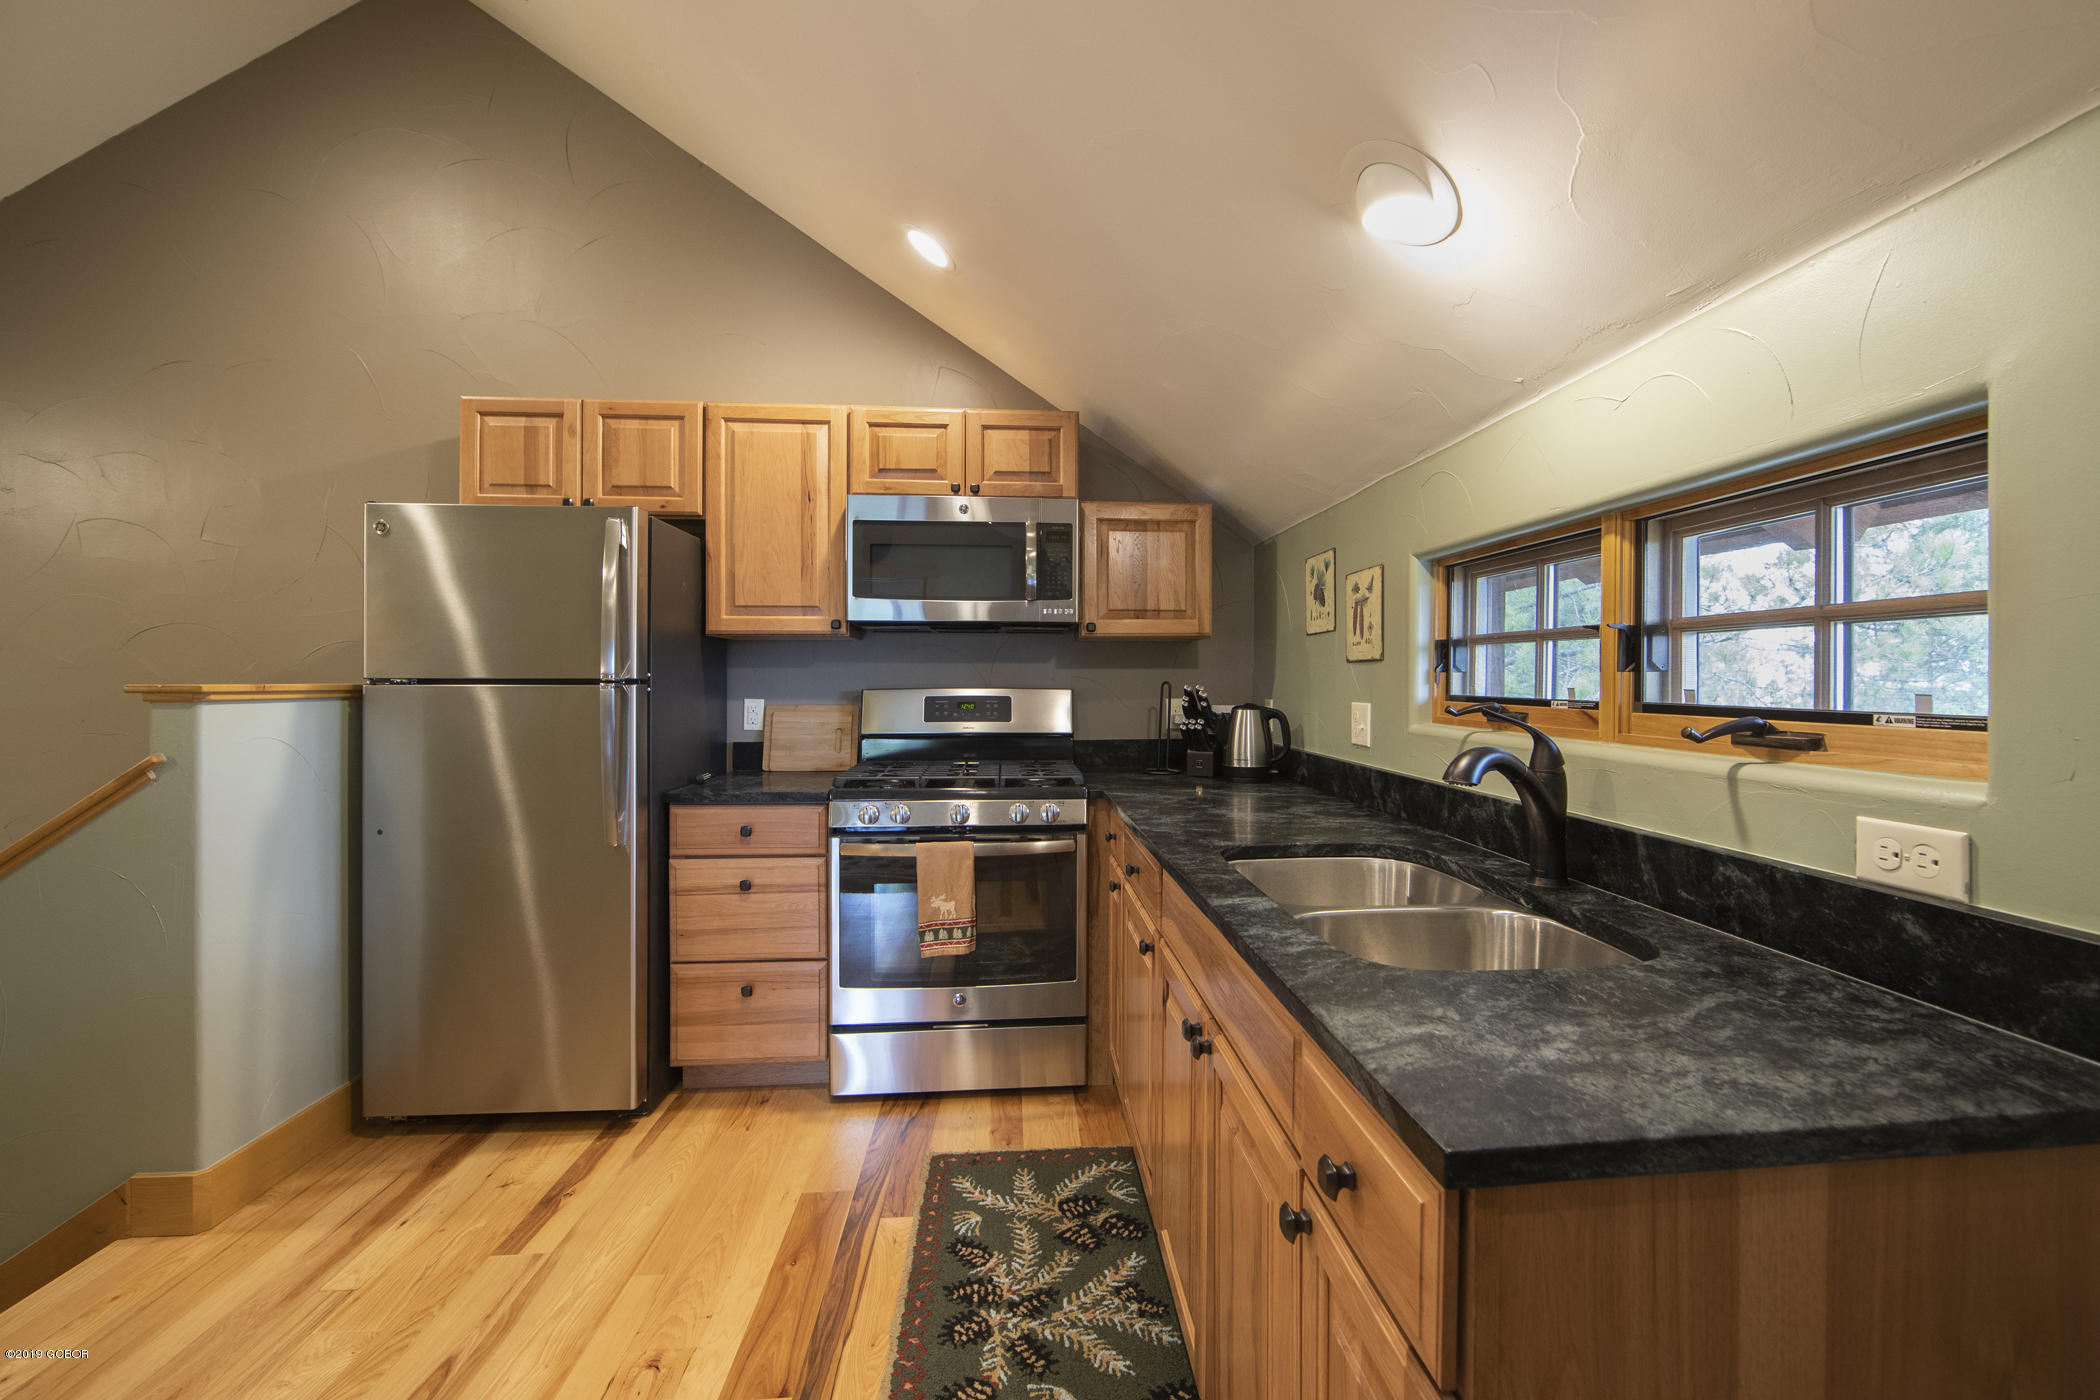 MLS# 19-704 - 48 - 612 County Rd 6237  #, Granby, CO 80446